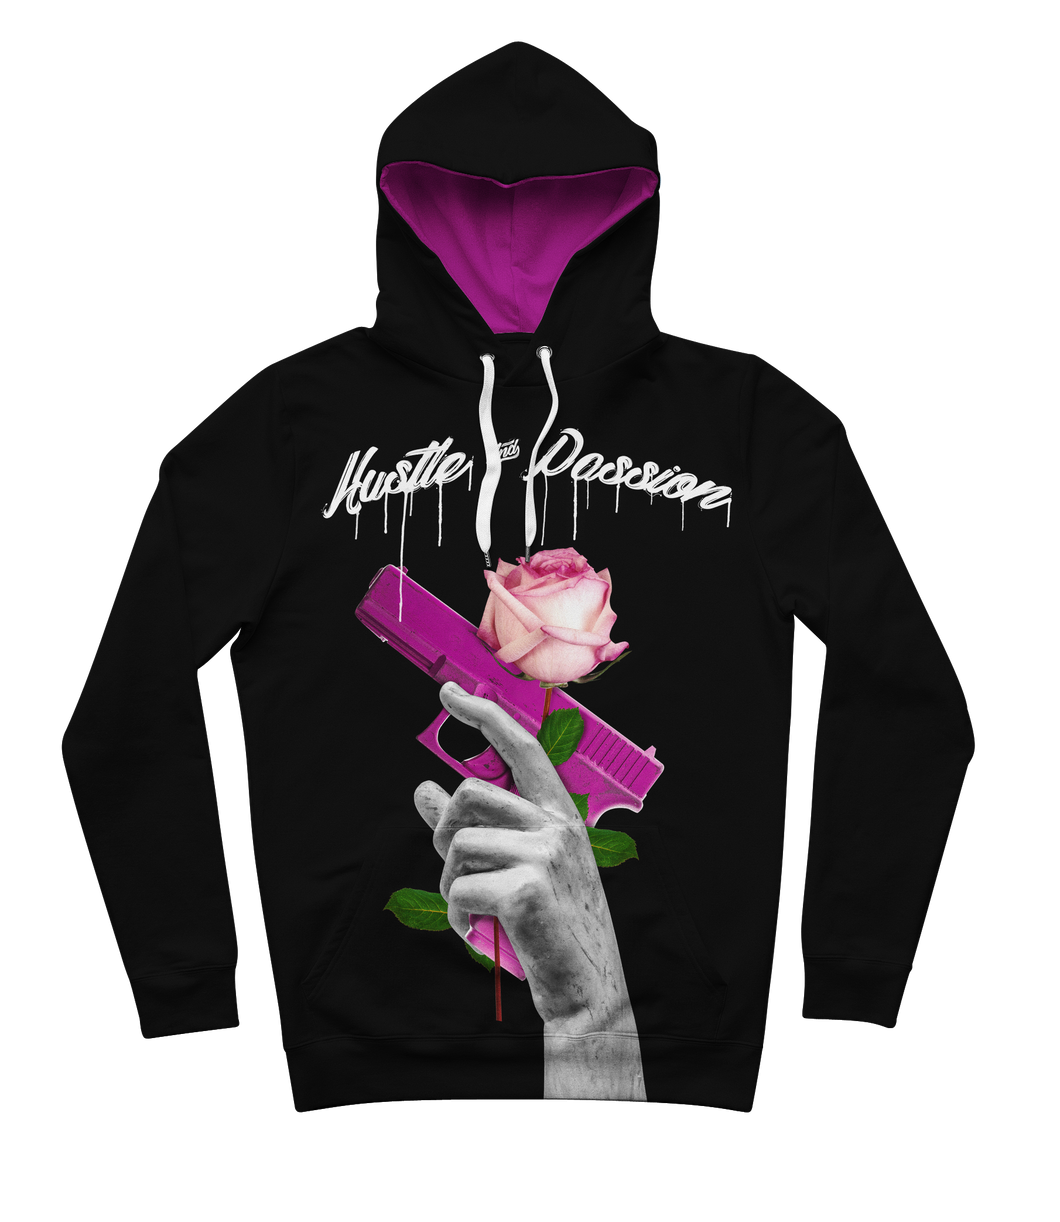 Hustle and passion Hoodie